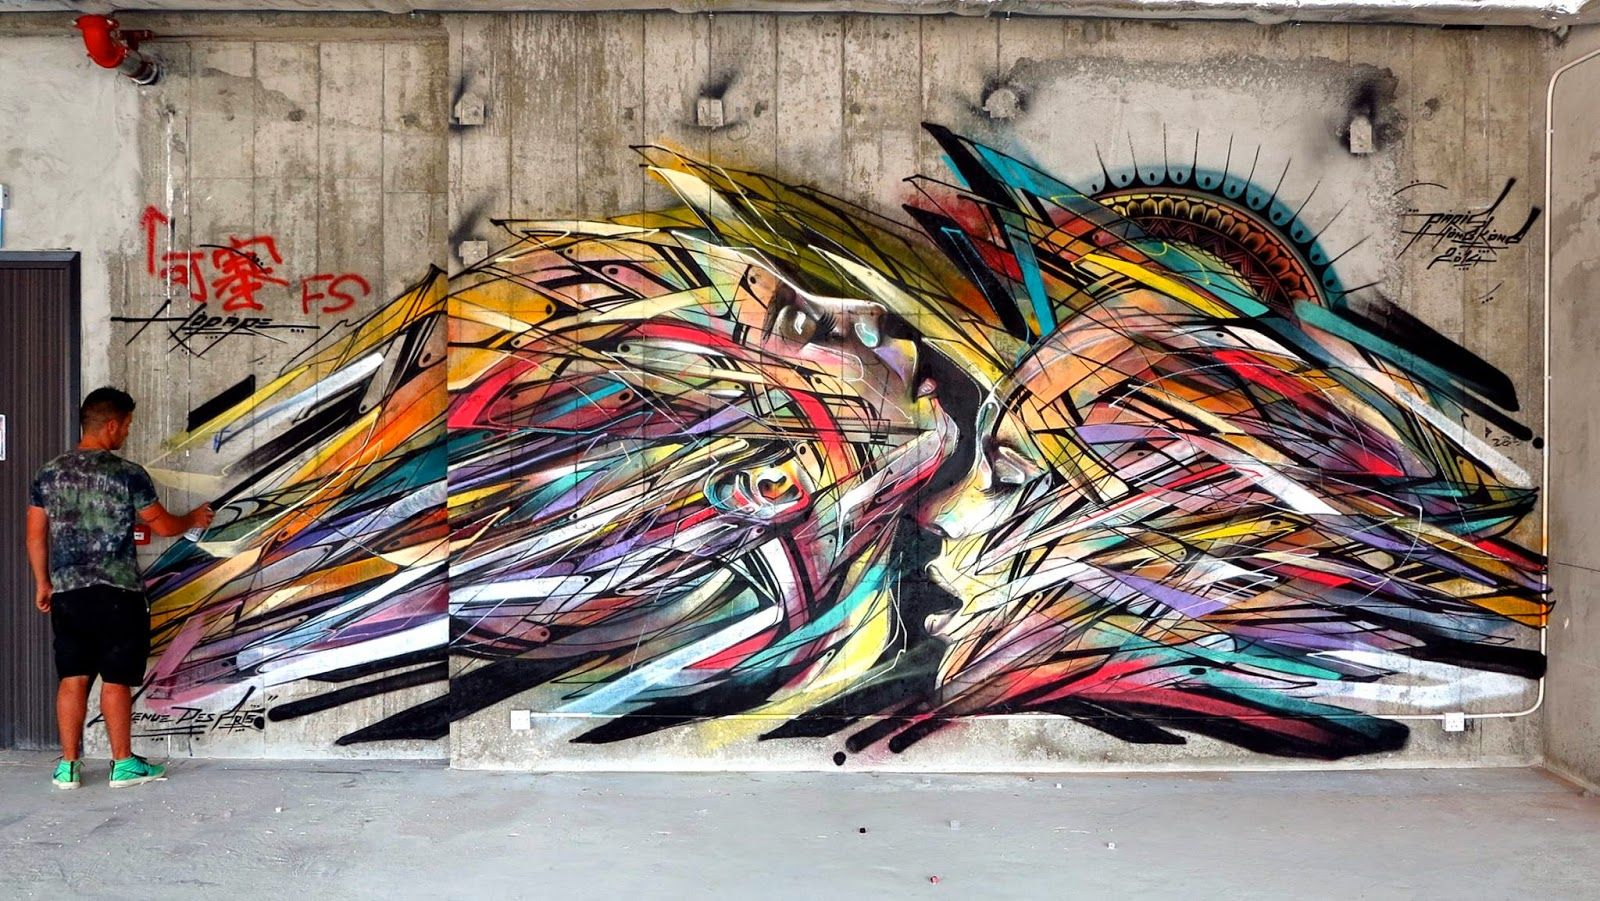 New mural by Hopare In Hong-Kong, China - 09.06.2014